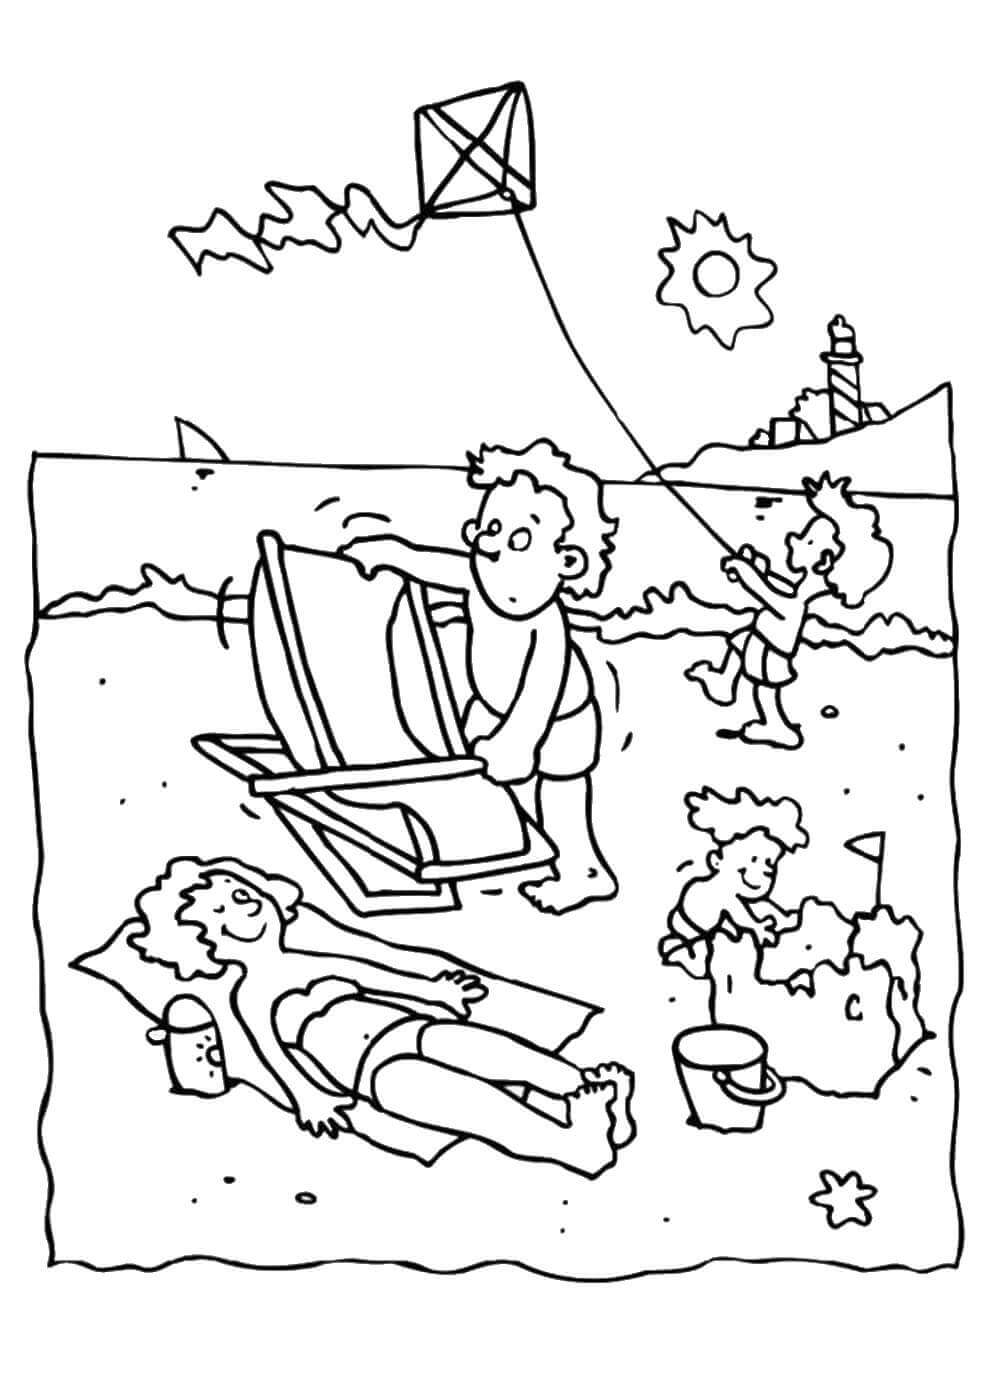 beach colouring page coloring pages beach coloring pages beach scenes activities pages beach page coloring colouring